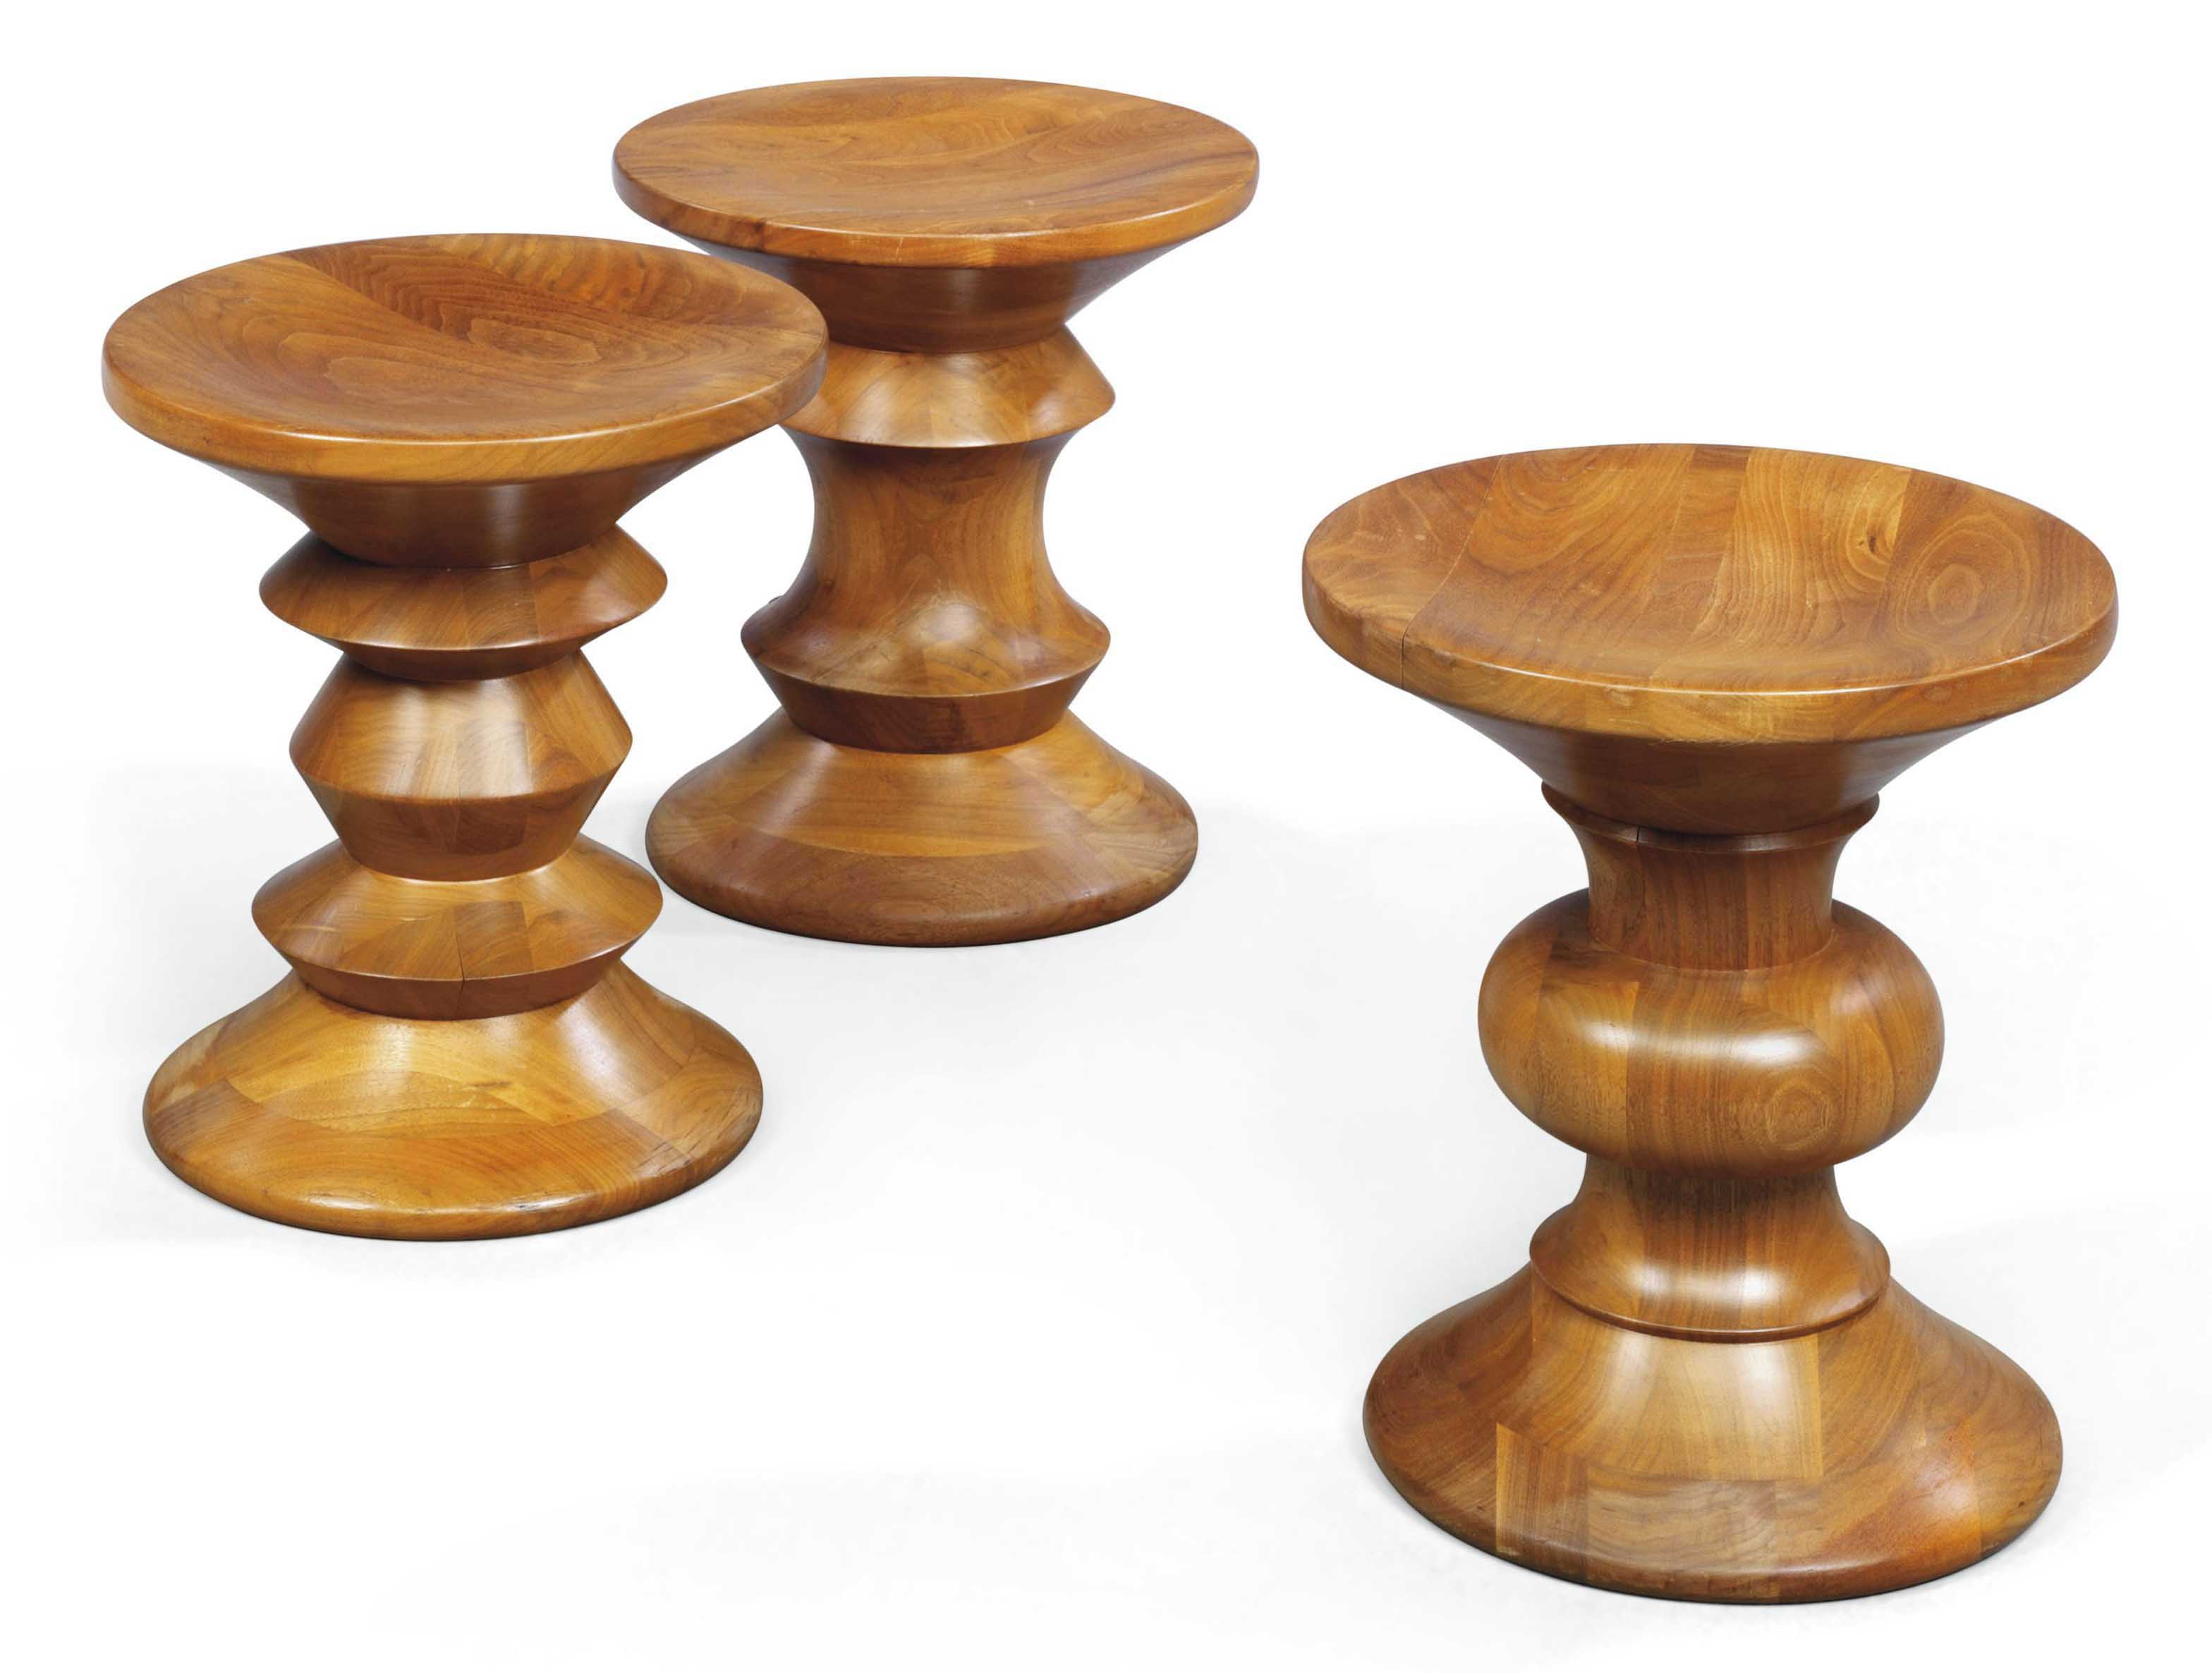 A SET OF THREE 'TIME LIFE' STOOLS, DESIGNED BY CHARLES AND RAY EAMES PRODUCED BY HERMAN MILLER